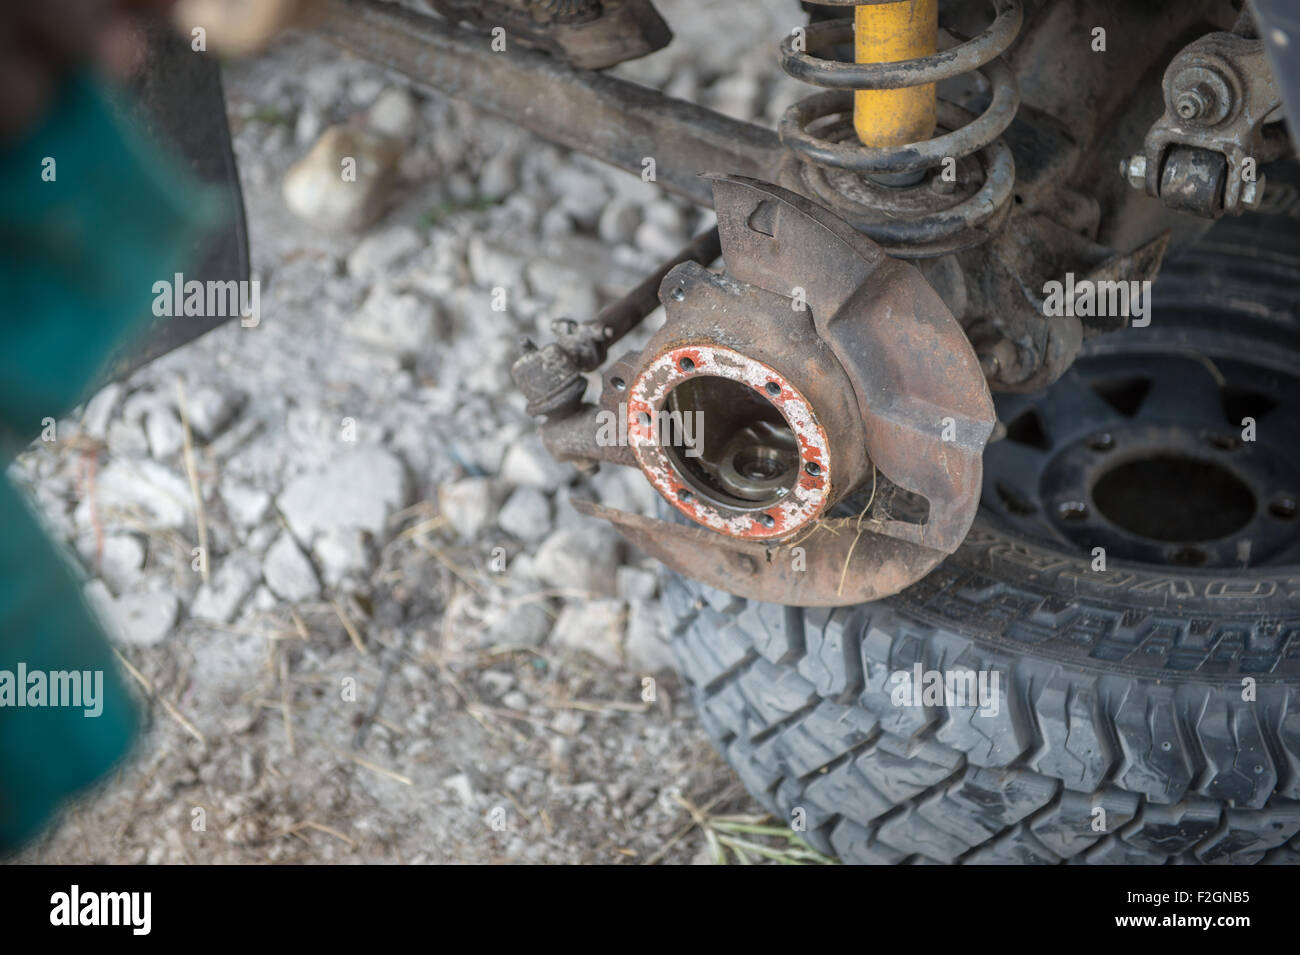 Close up of the undercarriage of a Land Rover in Botswana, Africa - Stock Image